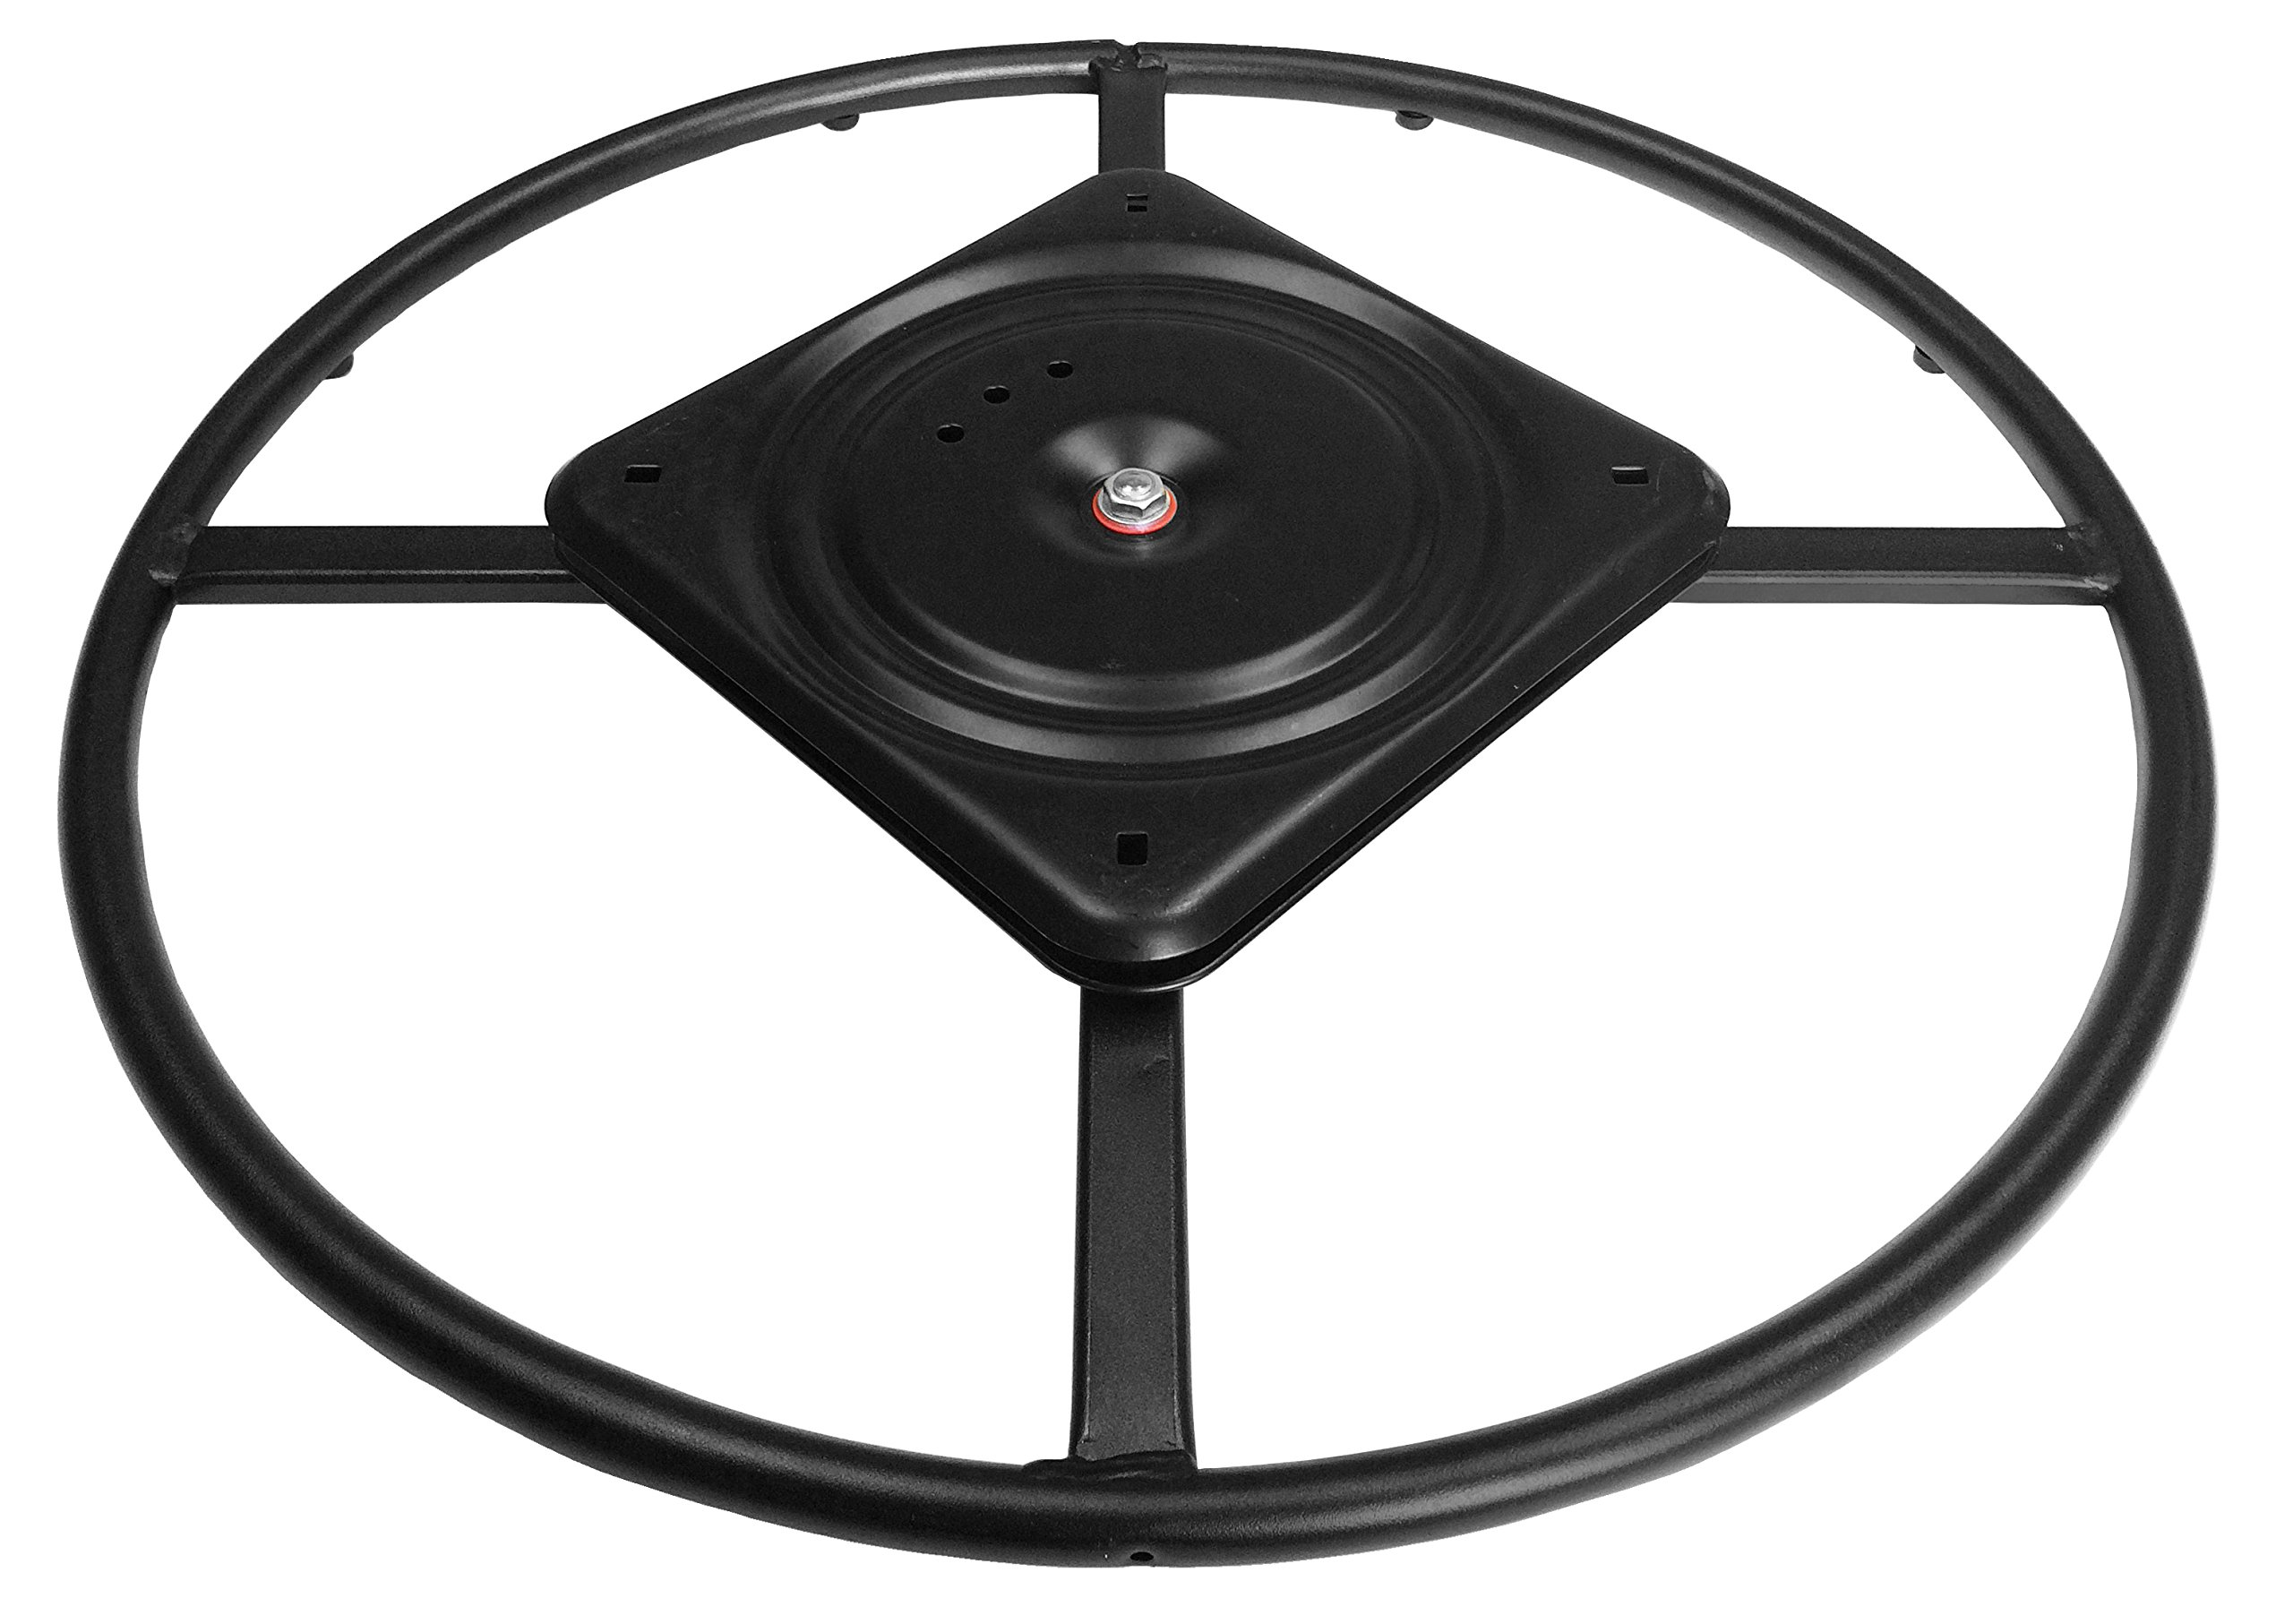 chairpartsonline 22'' Replacement Ring Base w/Swivel for Recliner Chairs & Furniture, Includes Swivel - S5469-A